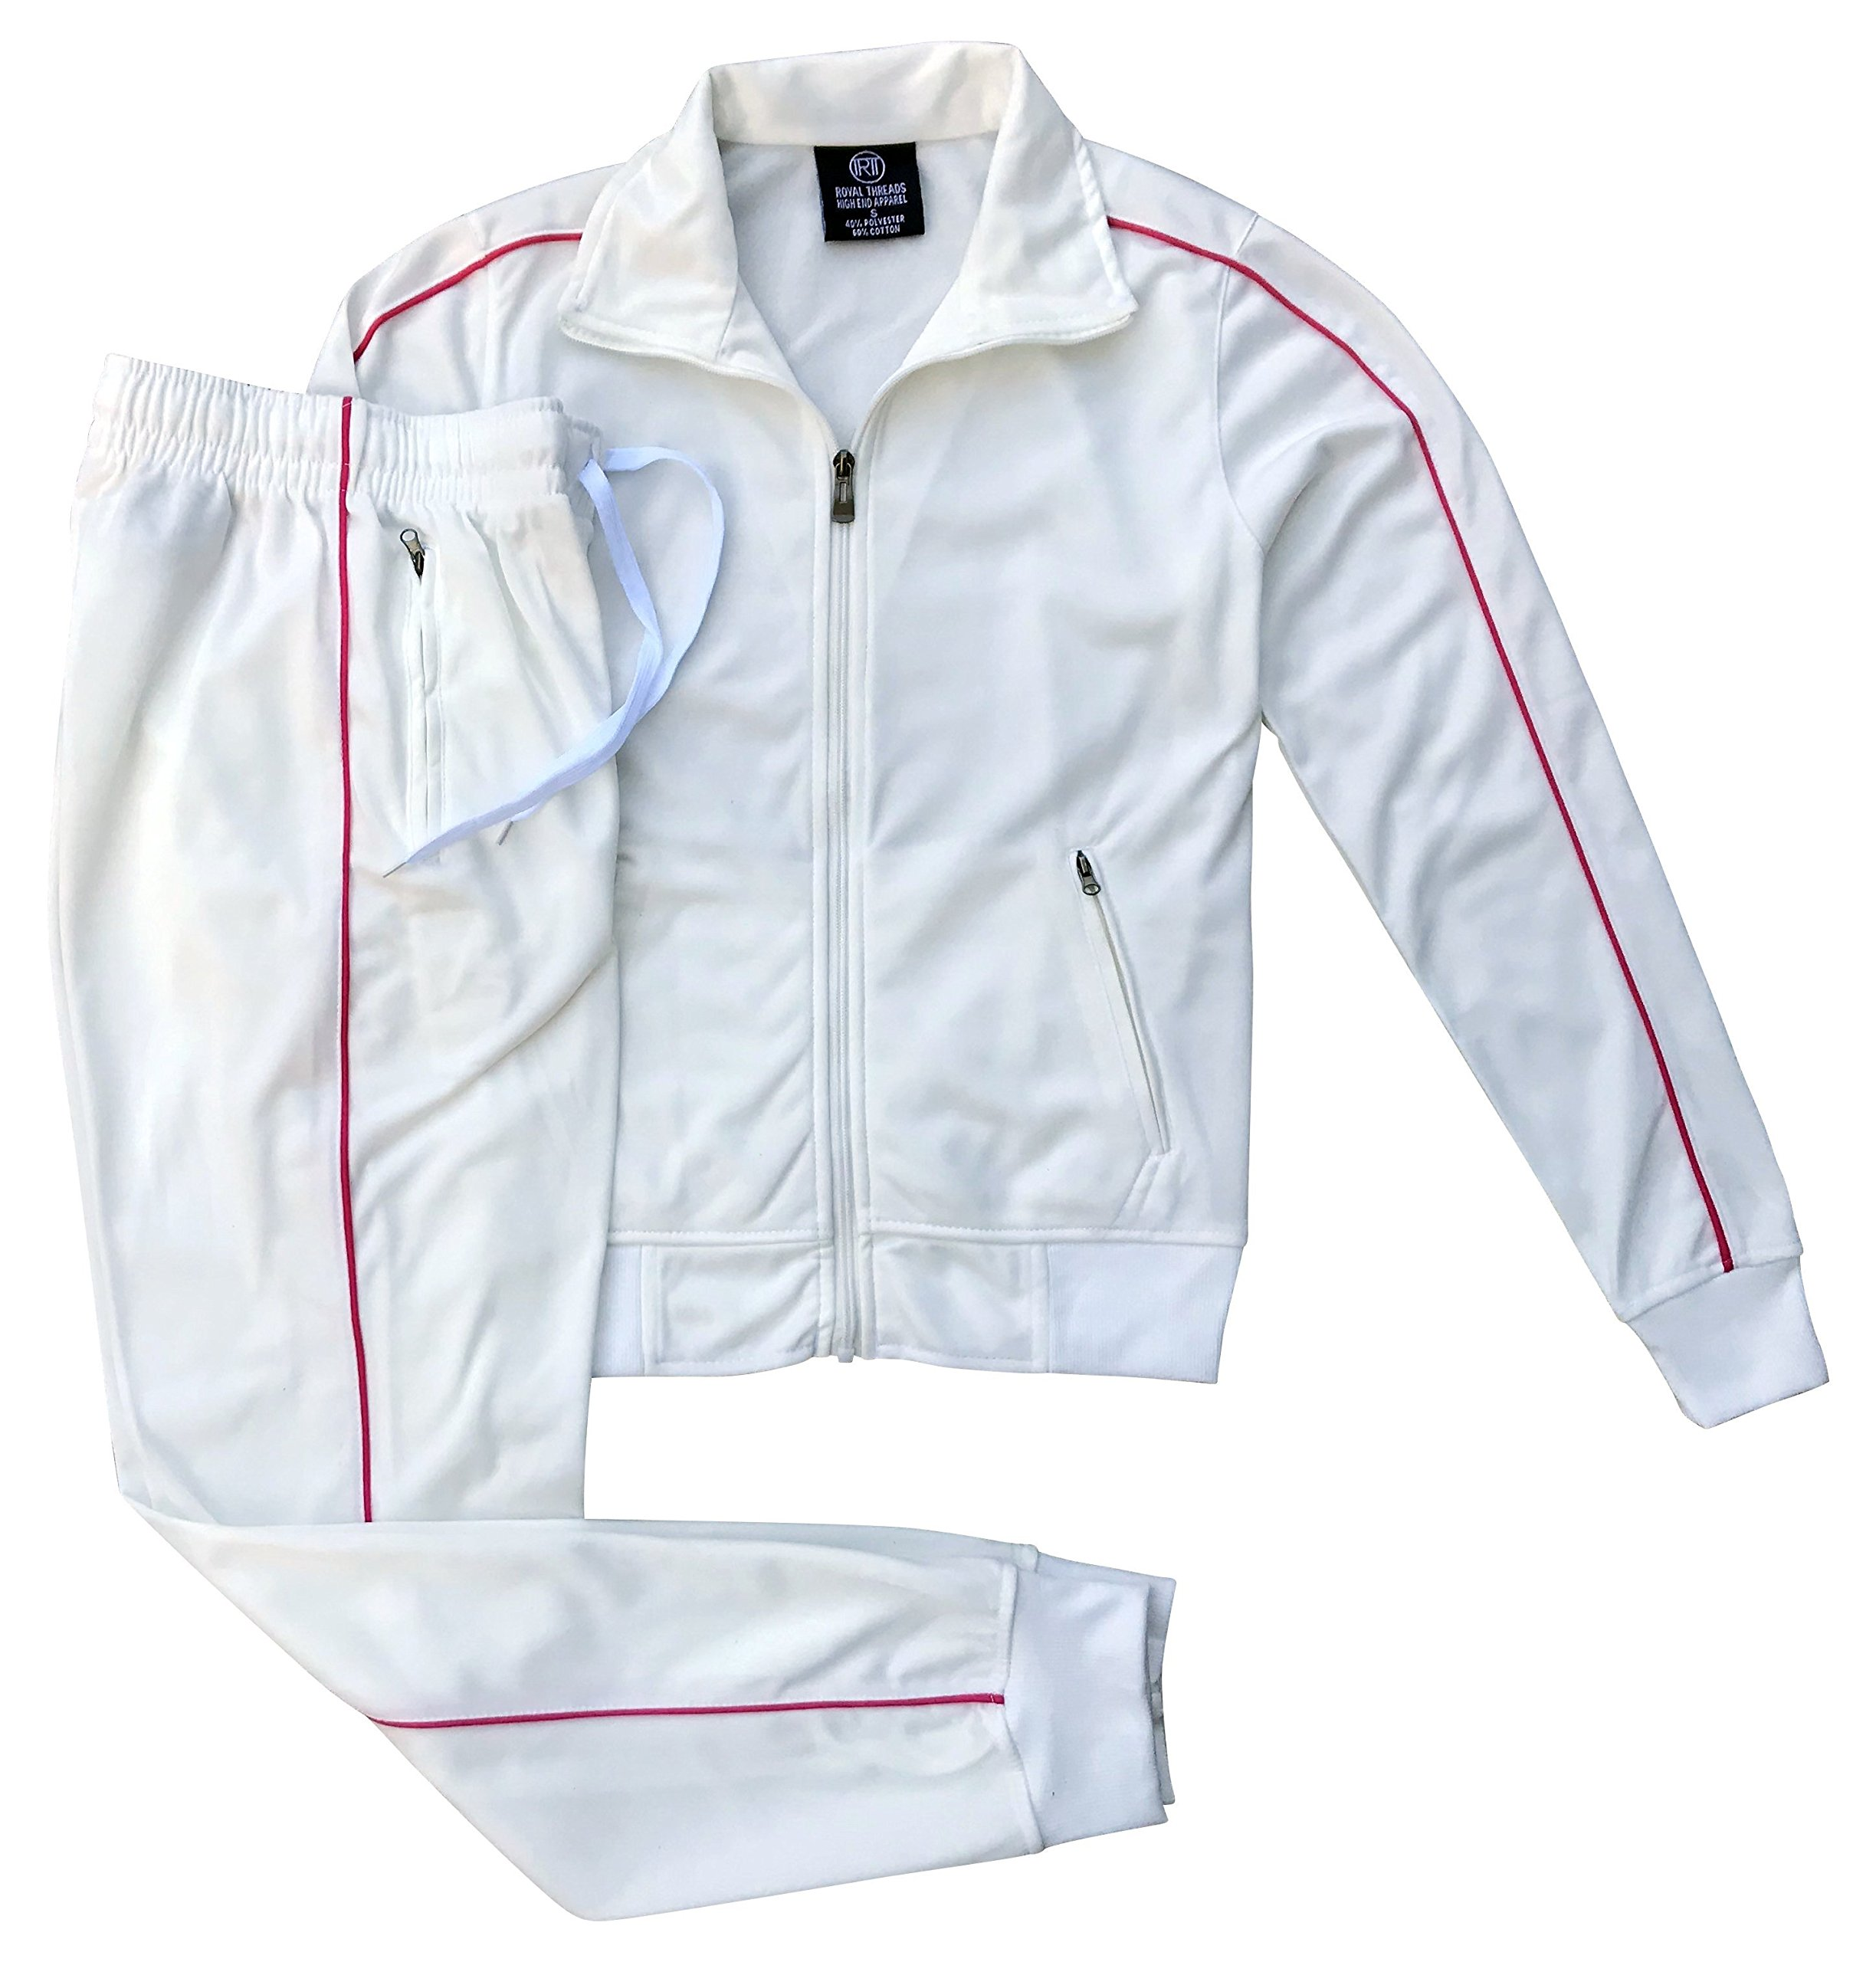 Women's Athletic Sports Exertion Tracksuit Outfit Trackpant and Track Jacket Jogger Gym Casual Wear Set (White, L)